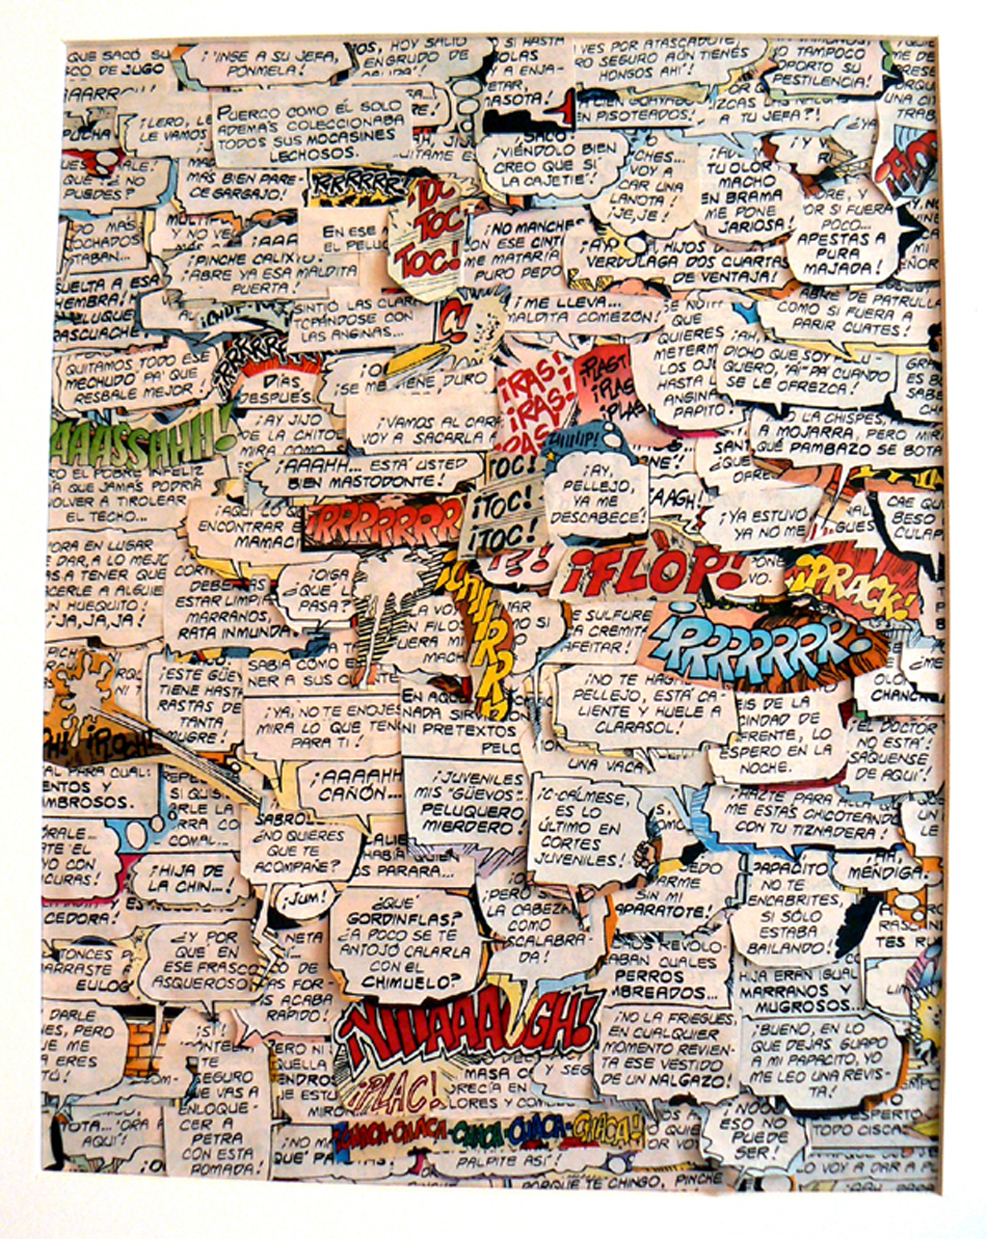 Image credit: Blanka Amezkua,  Untitled,  2016, Collage of text bubbles from recycled Mexican adult comic books, Courtesy of the artist